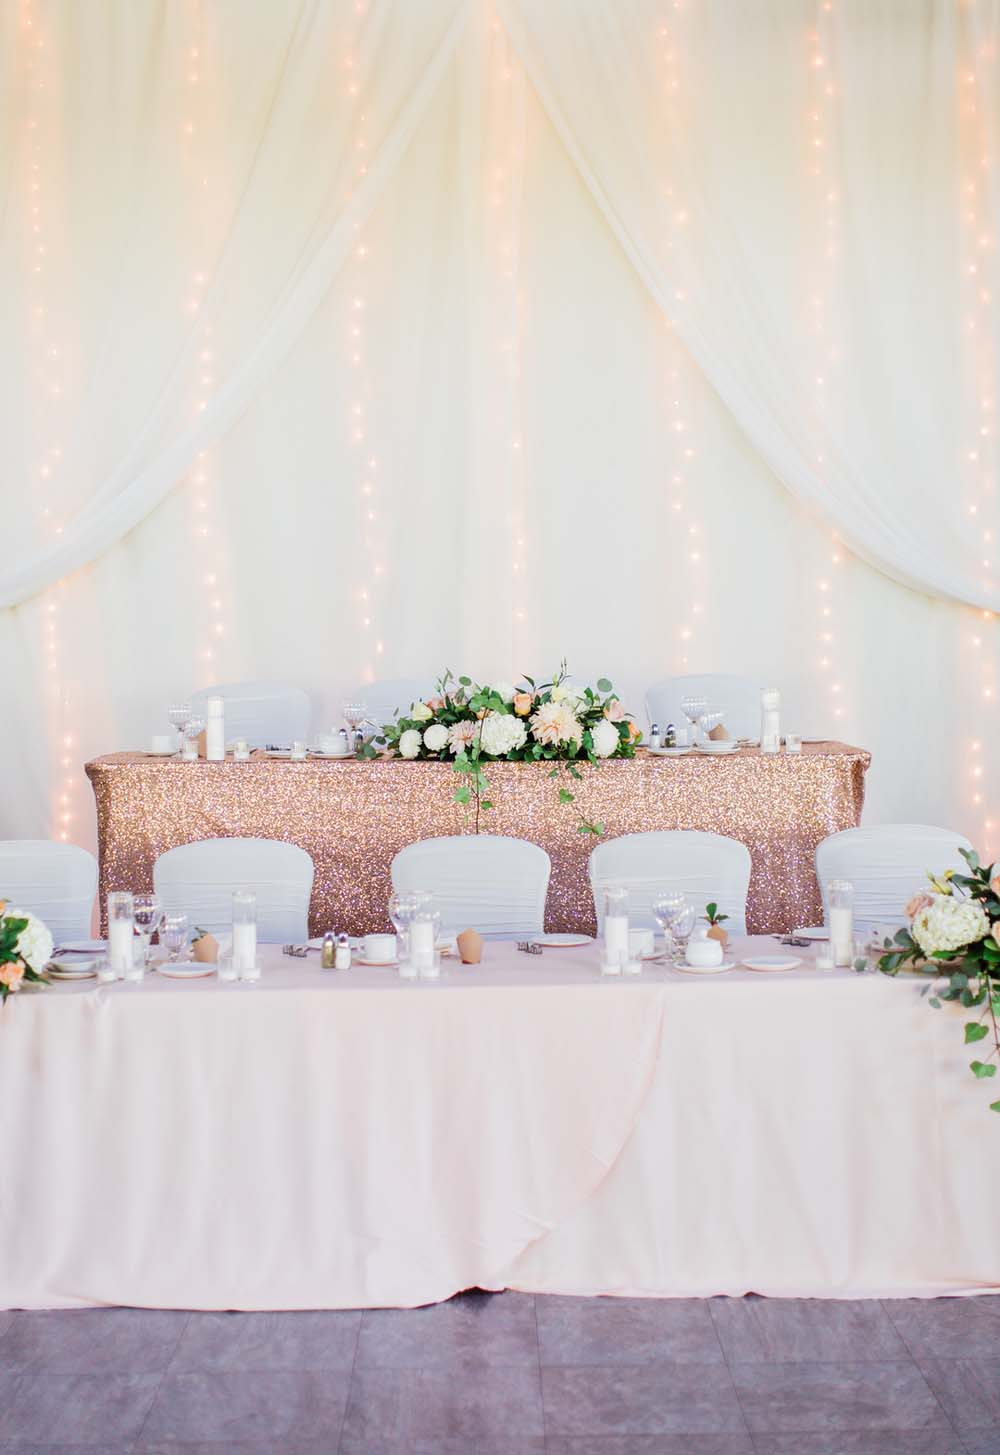 A Rustic, Whimsical Wedding in Tottenham - Head table